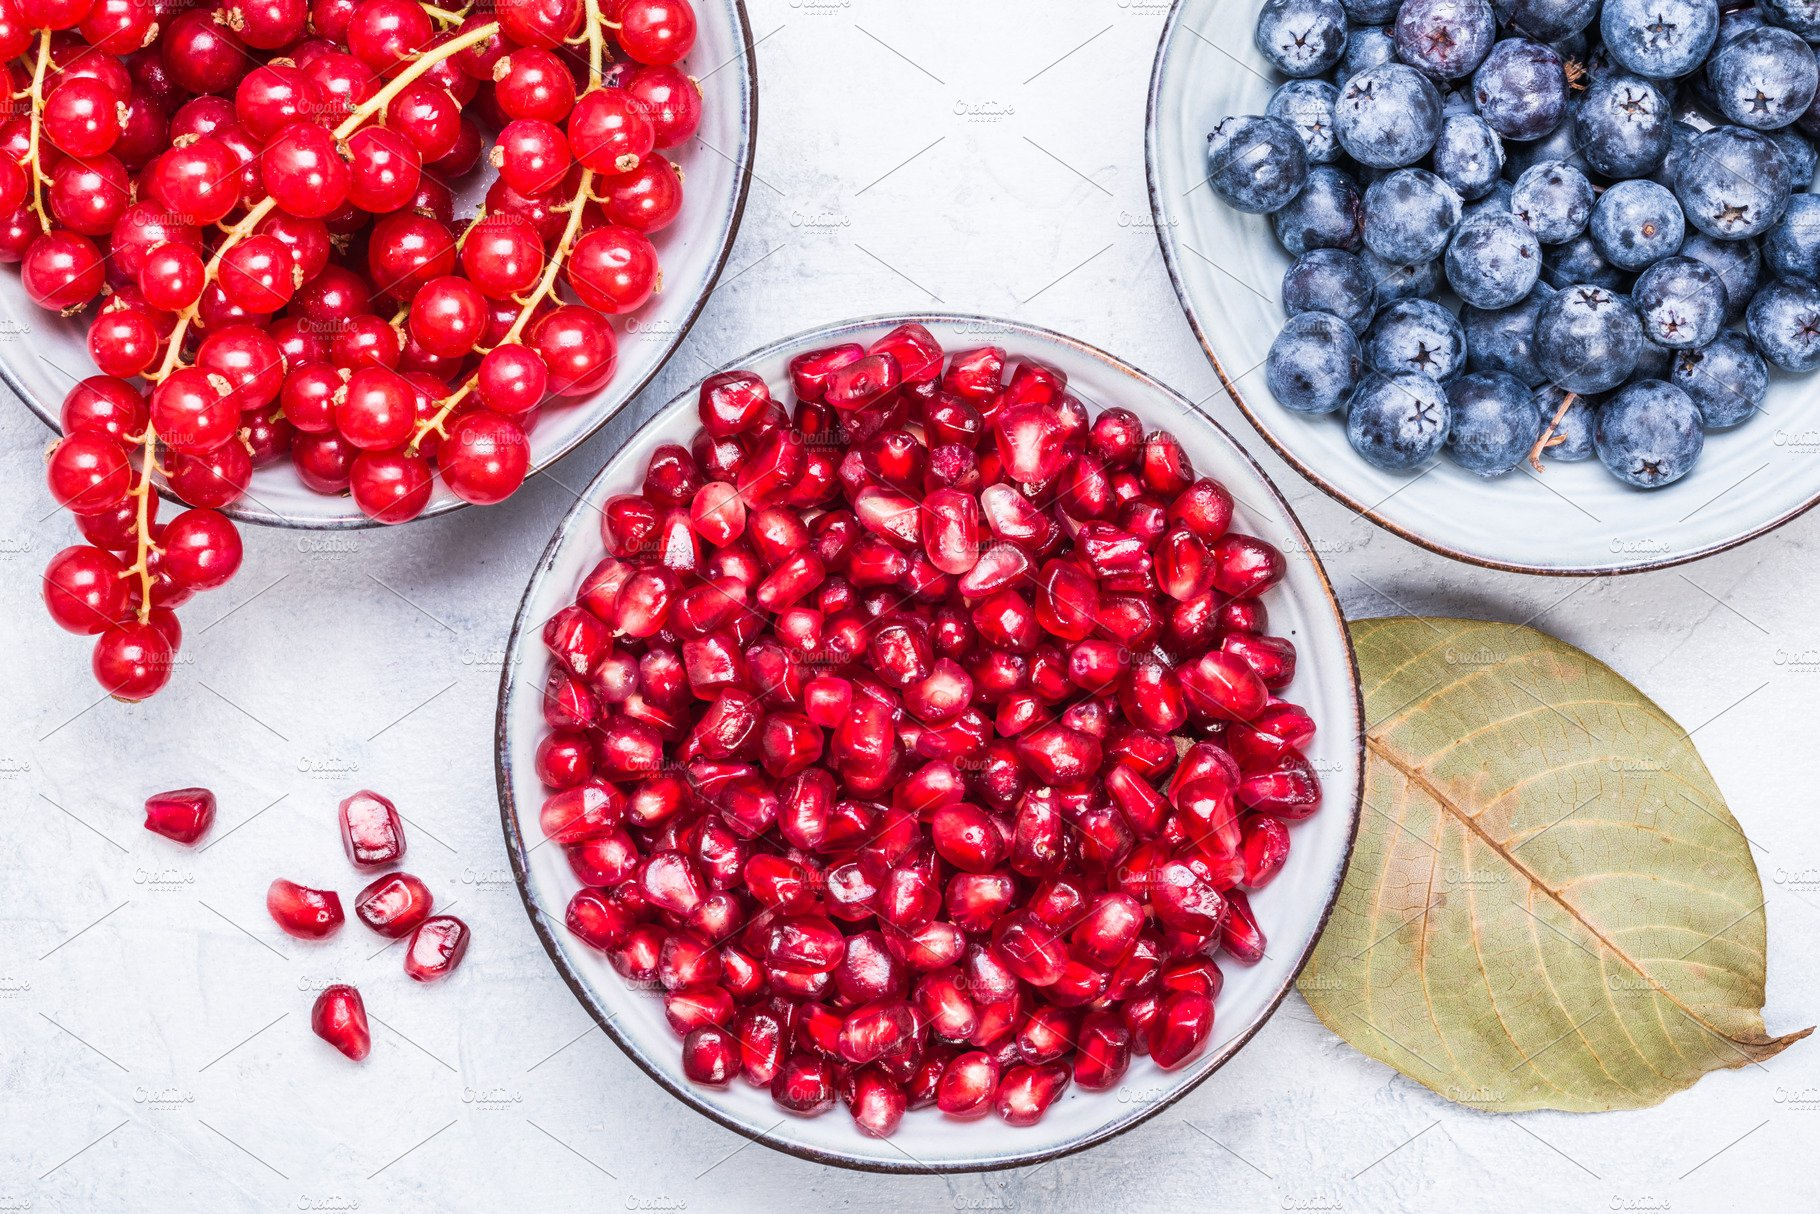 Berries and pomegranate. | High-Quality Food Images ~ Creative Market